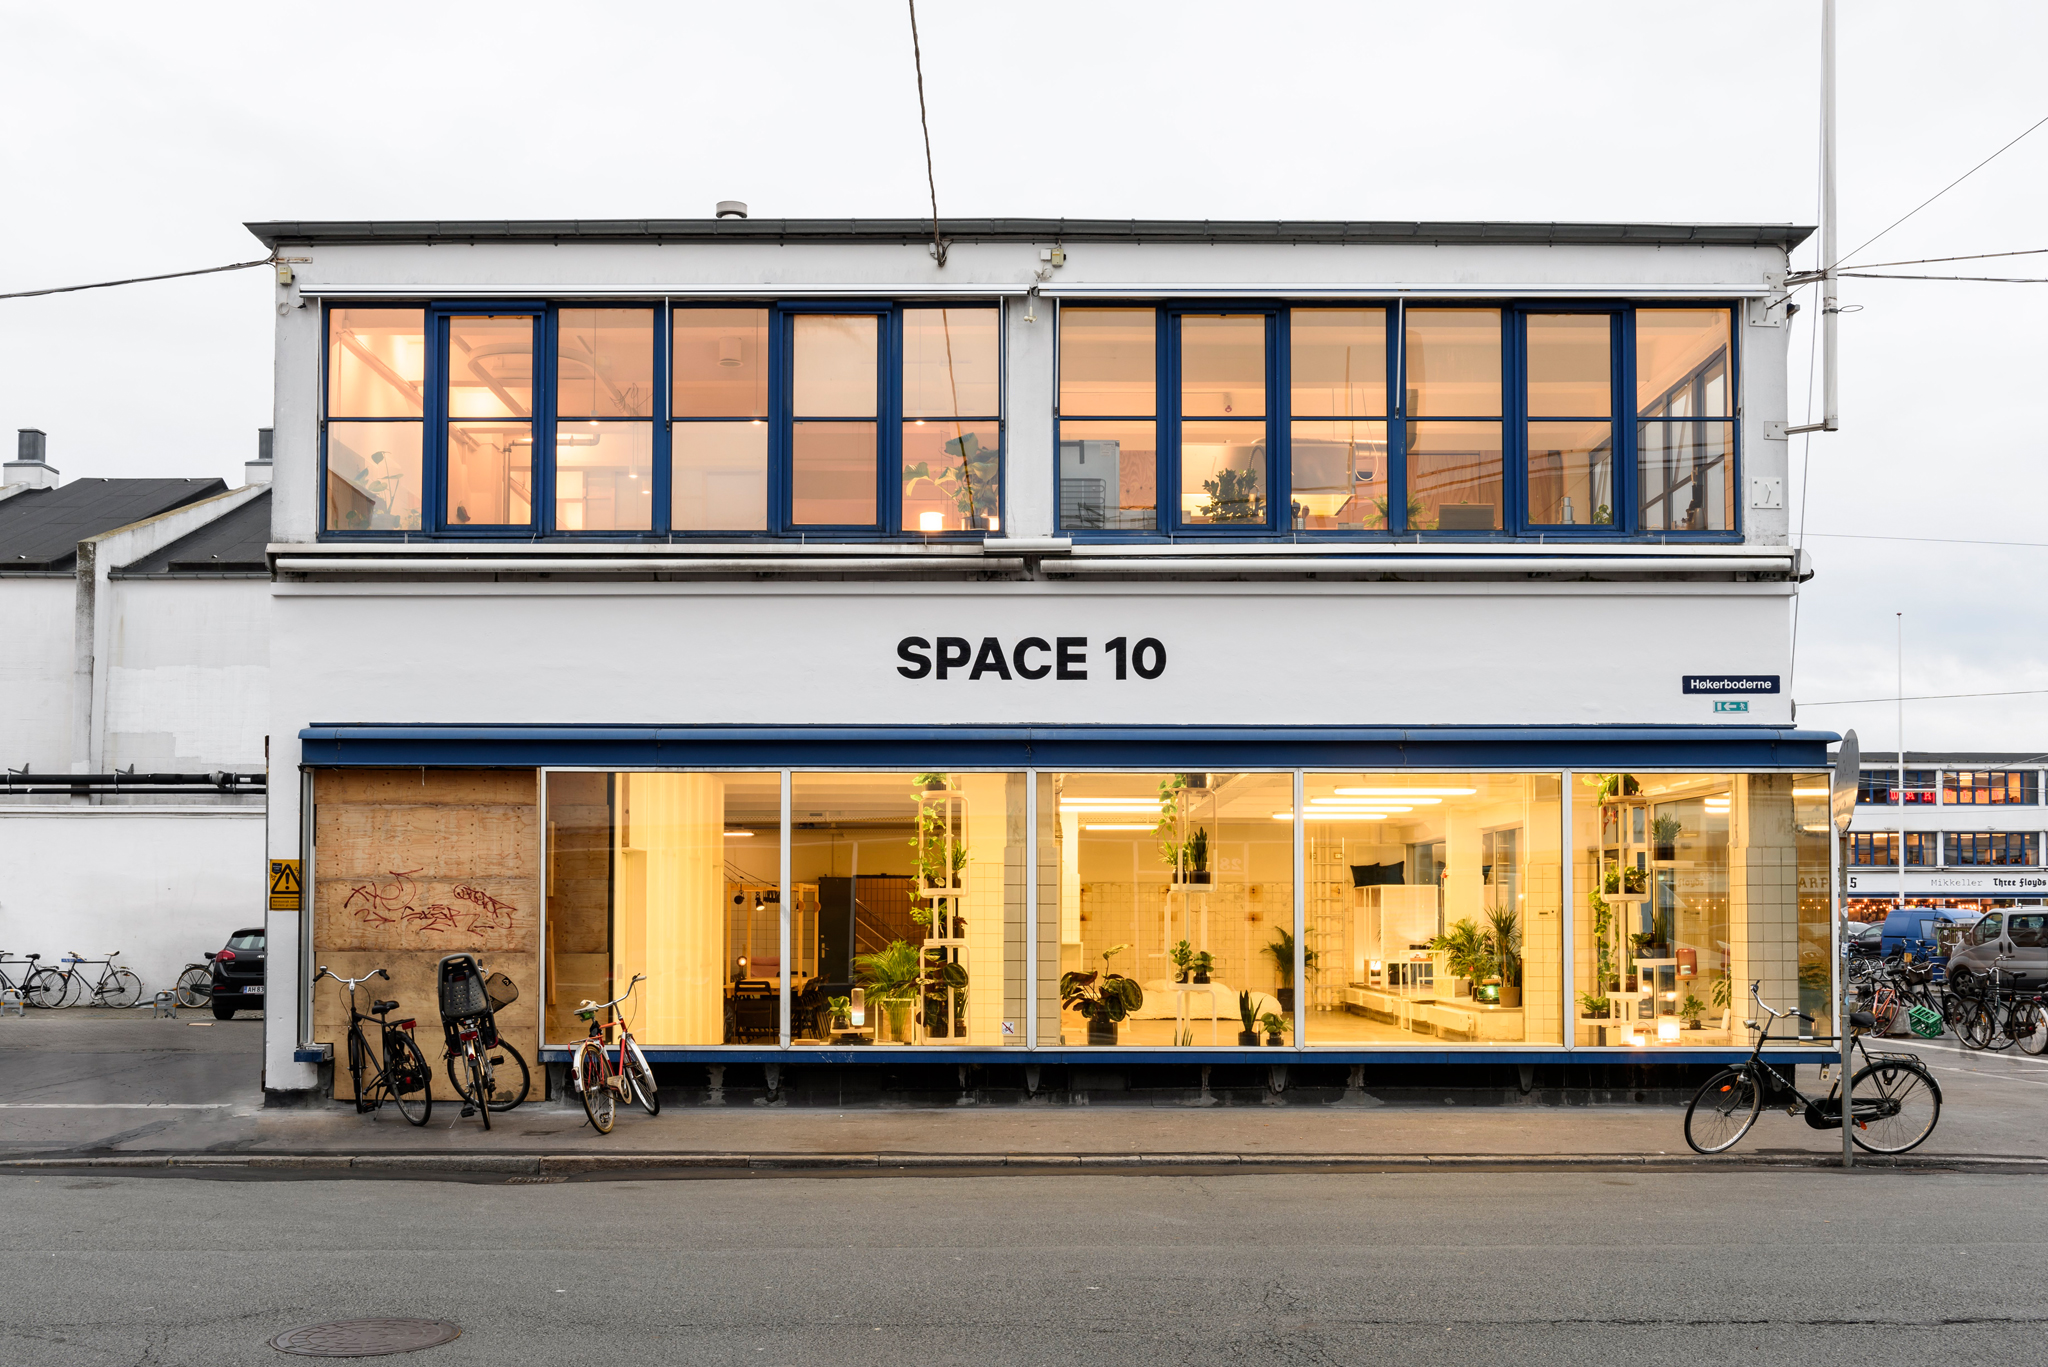 Space10 future-living lab and exhibition space in Copenhagen